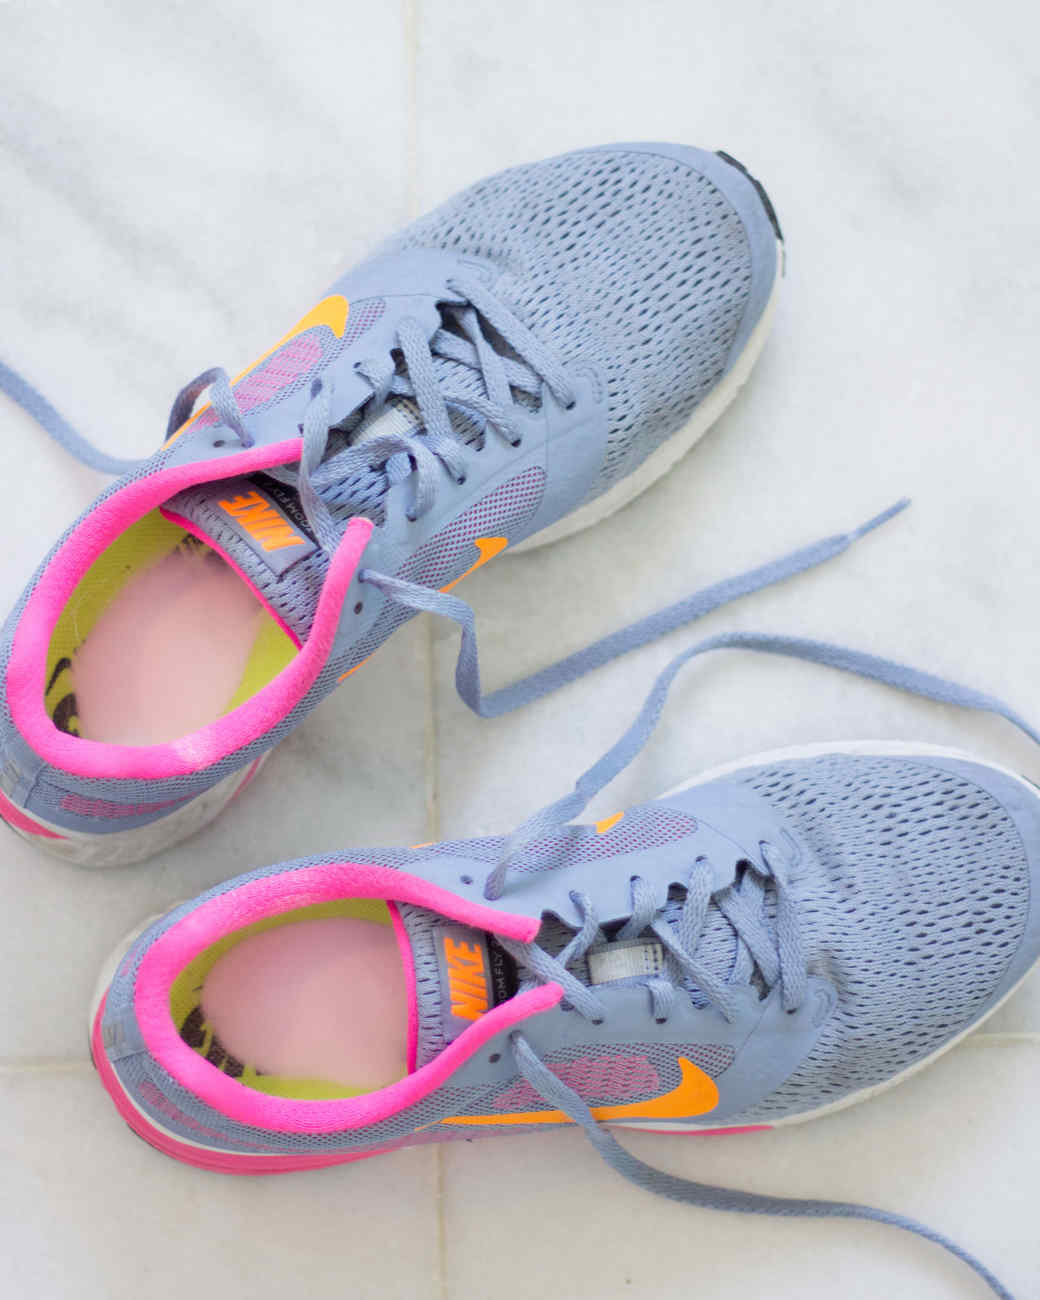 how-to-freshen-sneakers-with-baking-soda-0316.jpg